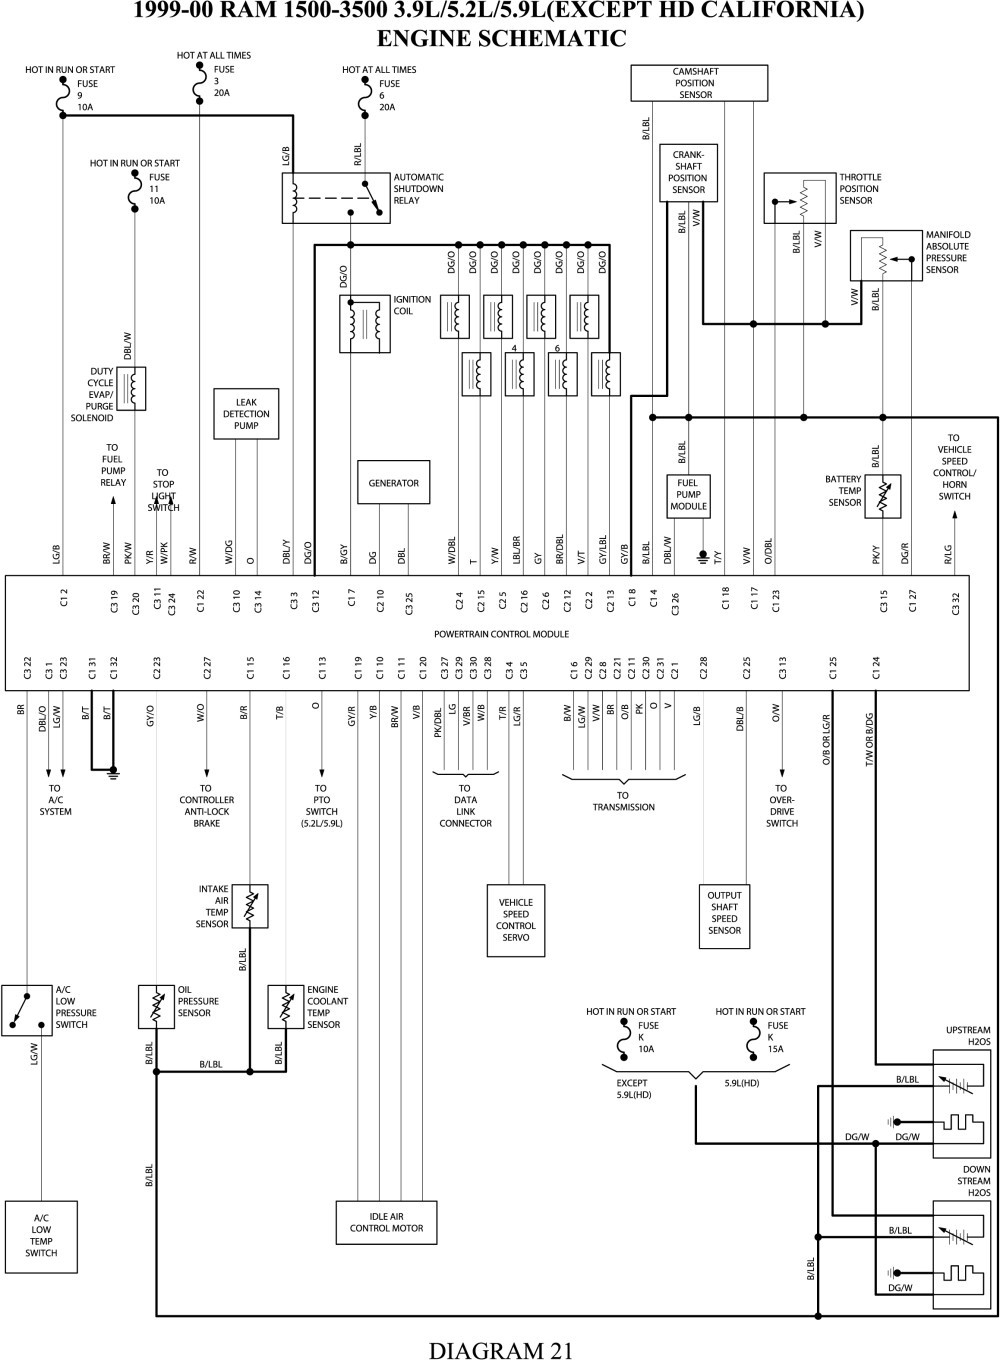 2014 Dodge Ram Wiring Diagram | Free Wiring Diagram